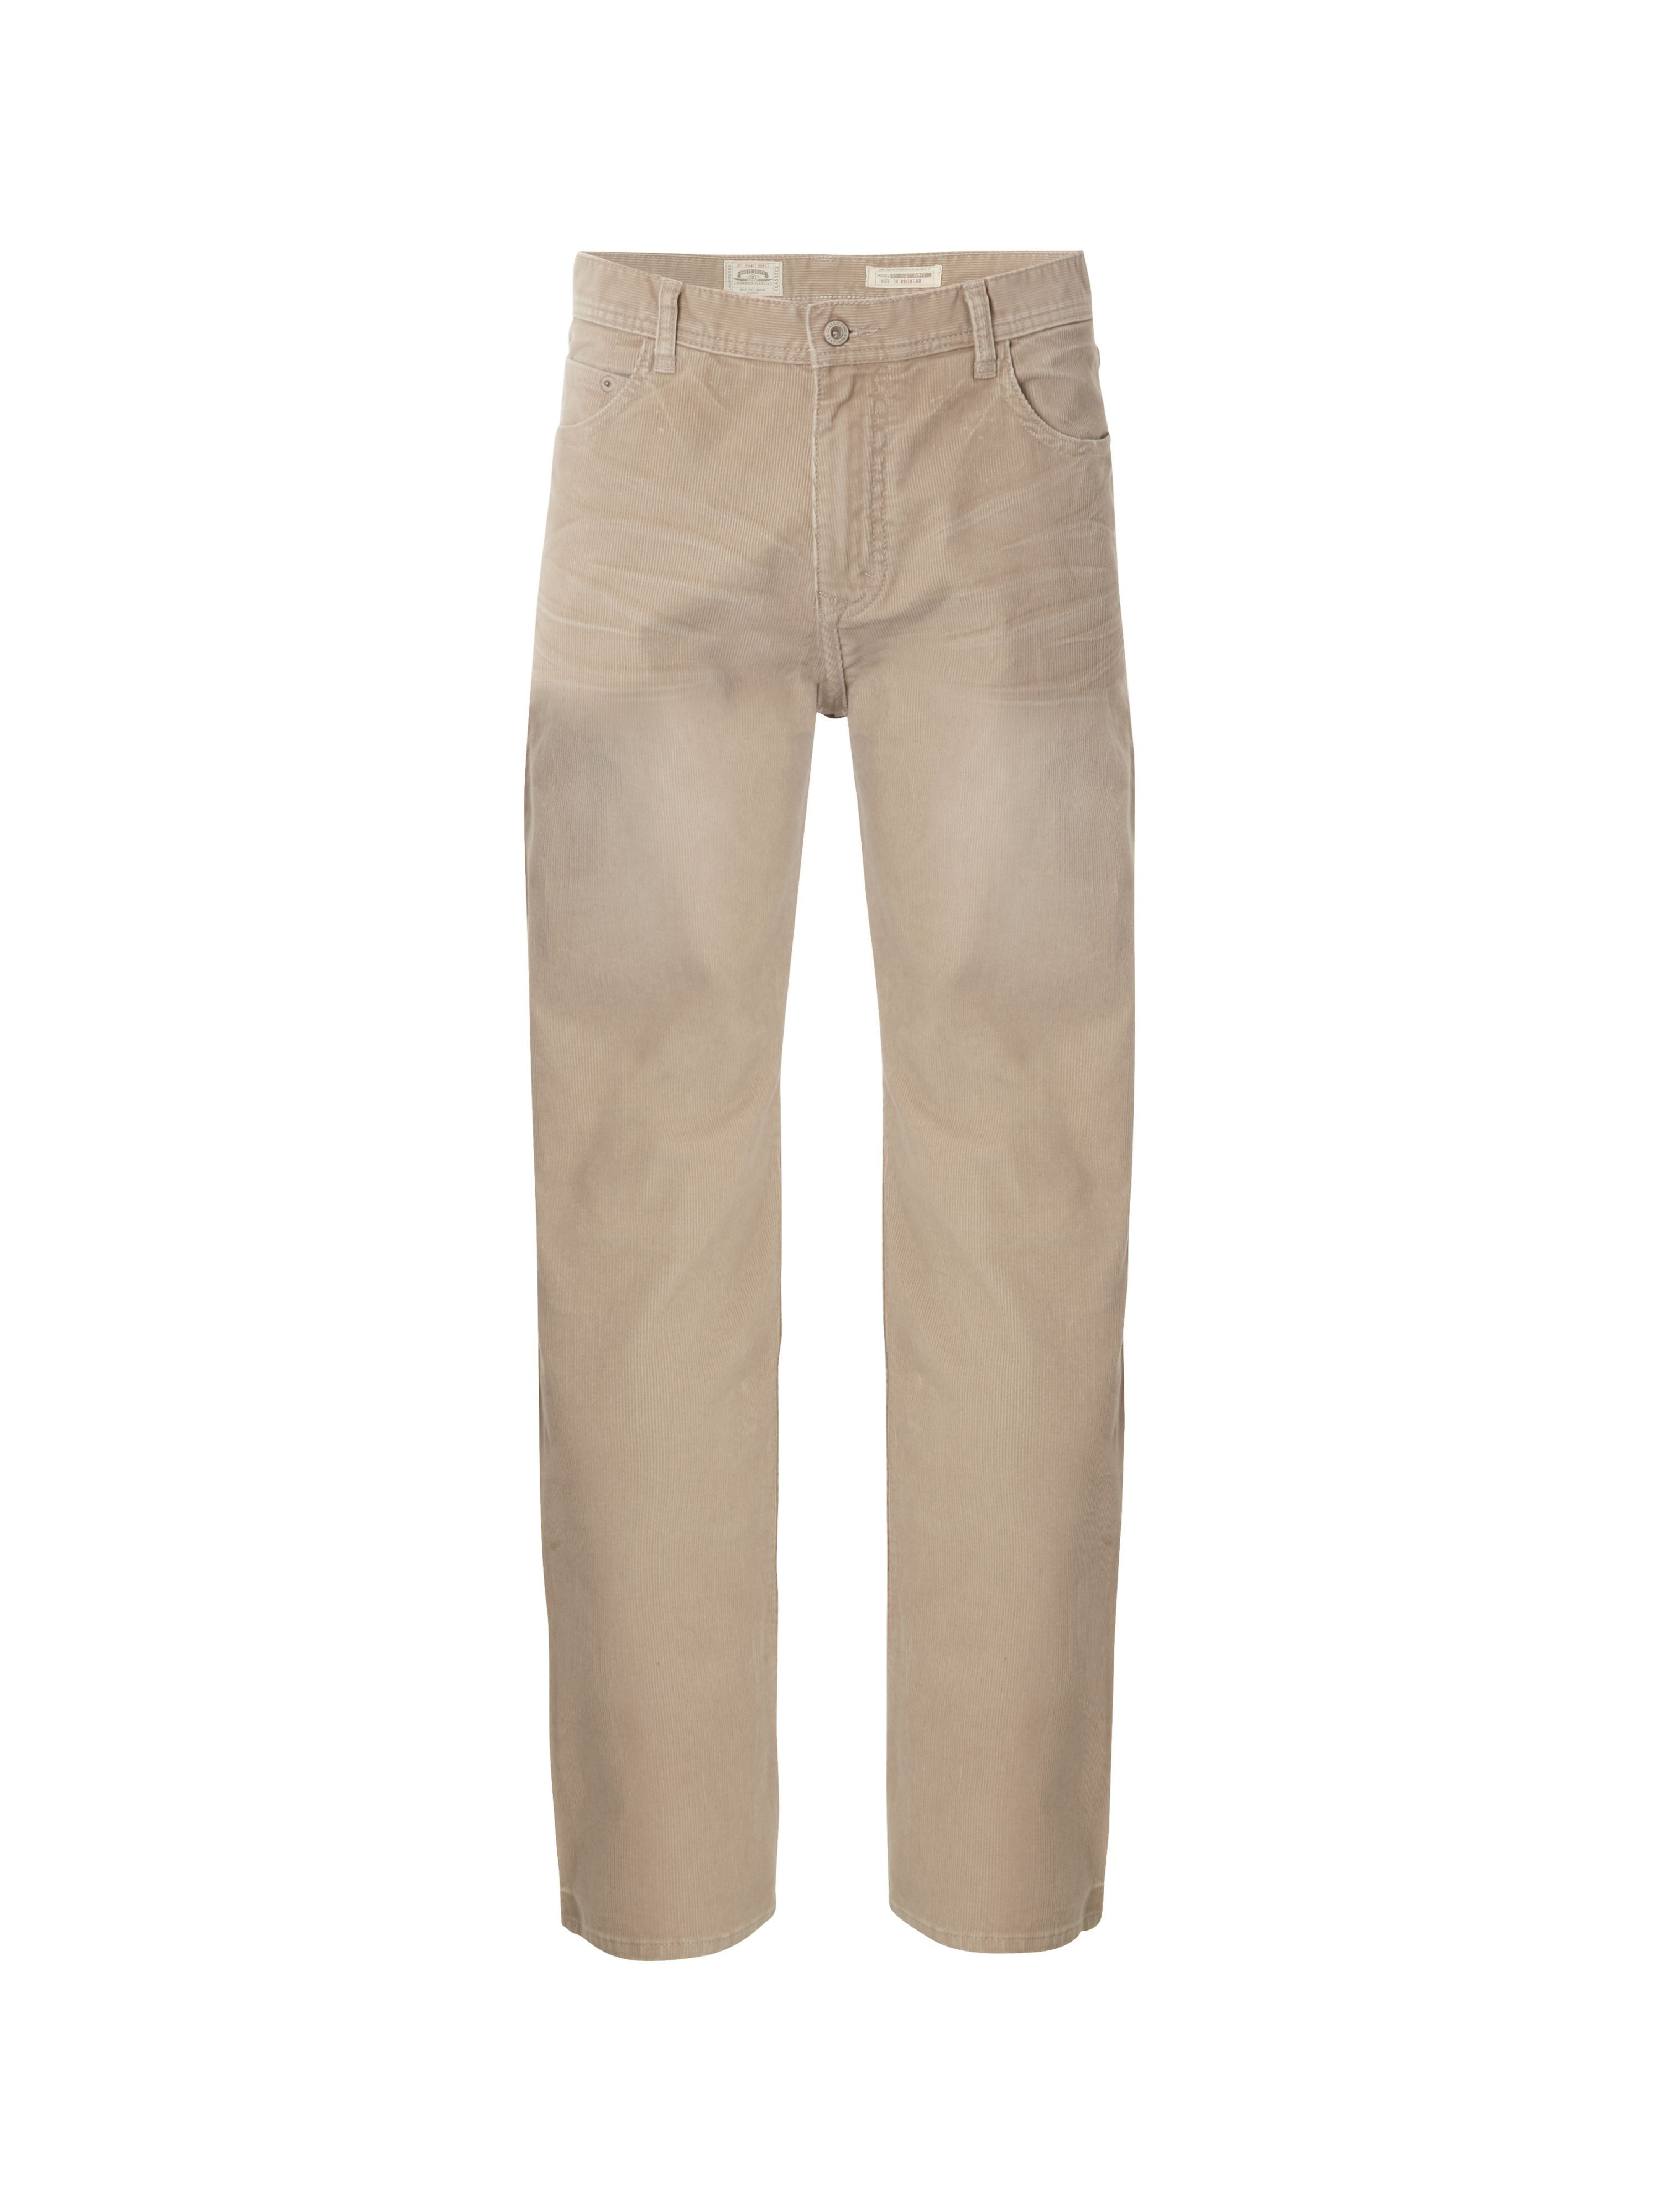 Strike cord trouser